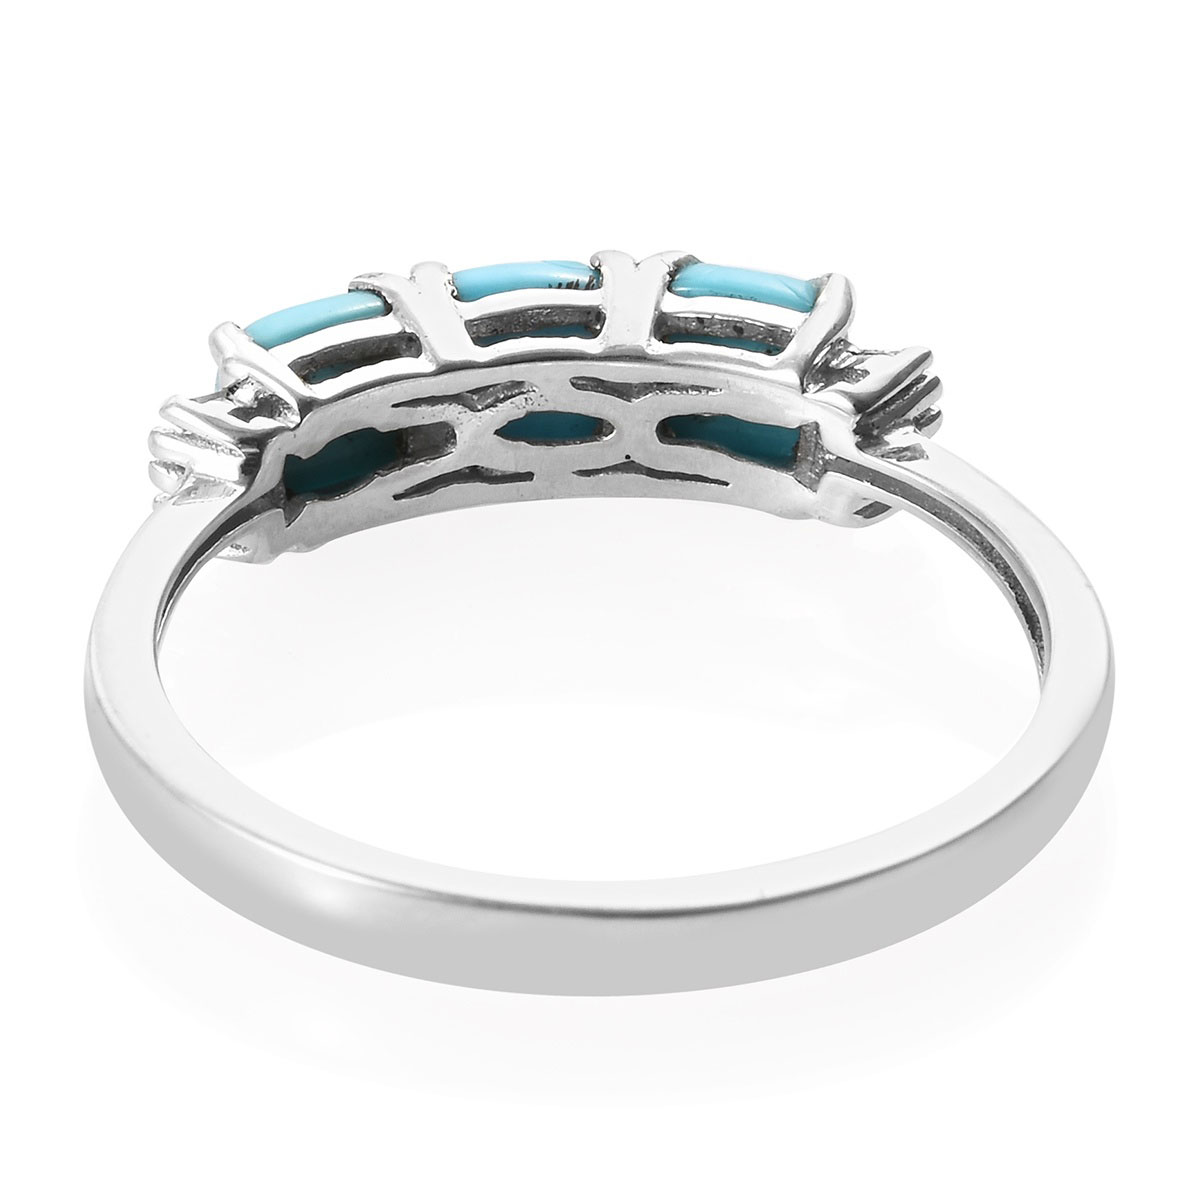 Arizona Sleeping Beauty Turquoise, Diamond (0.06 ct) Ring in Platinum Over Sterling Silver (Size 5.0) 1.78 ctw